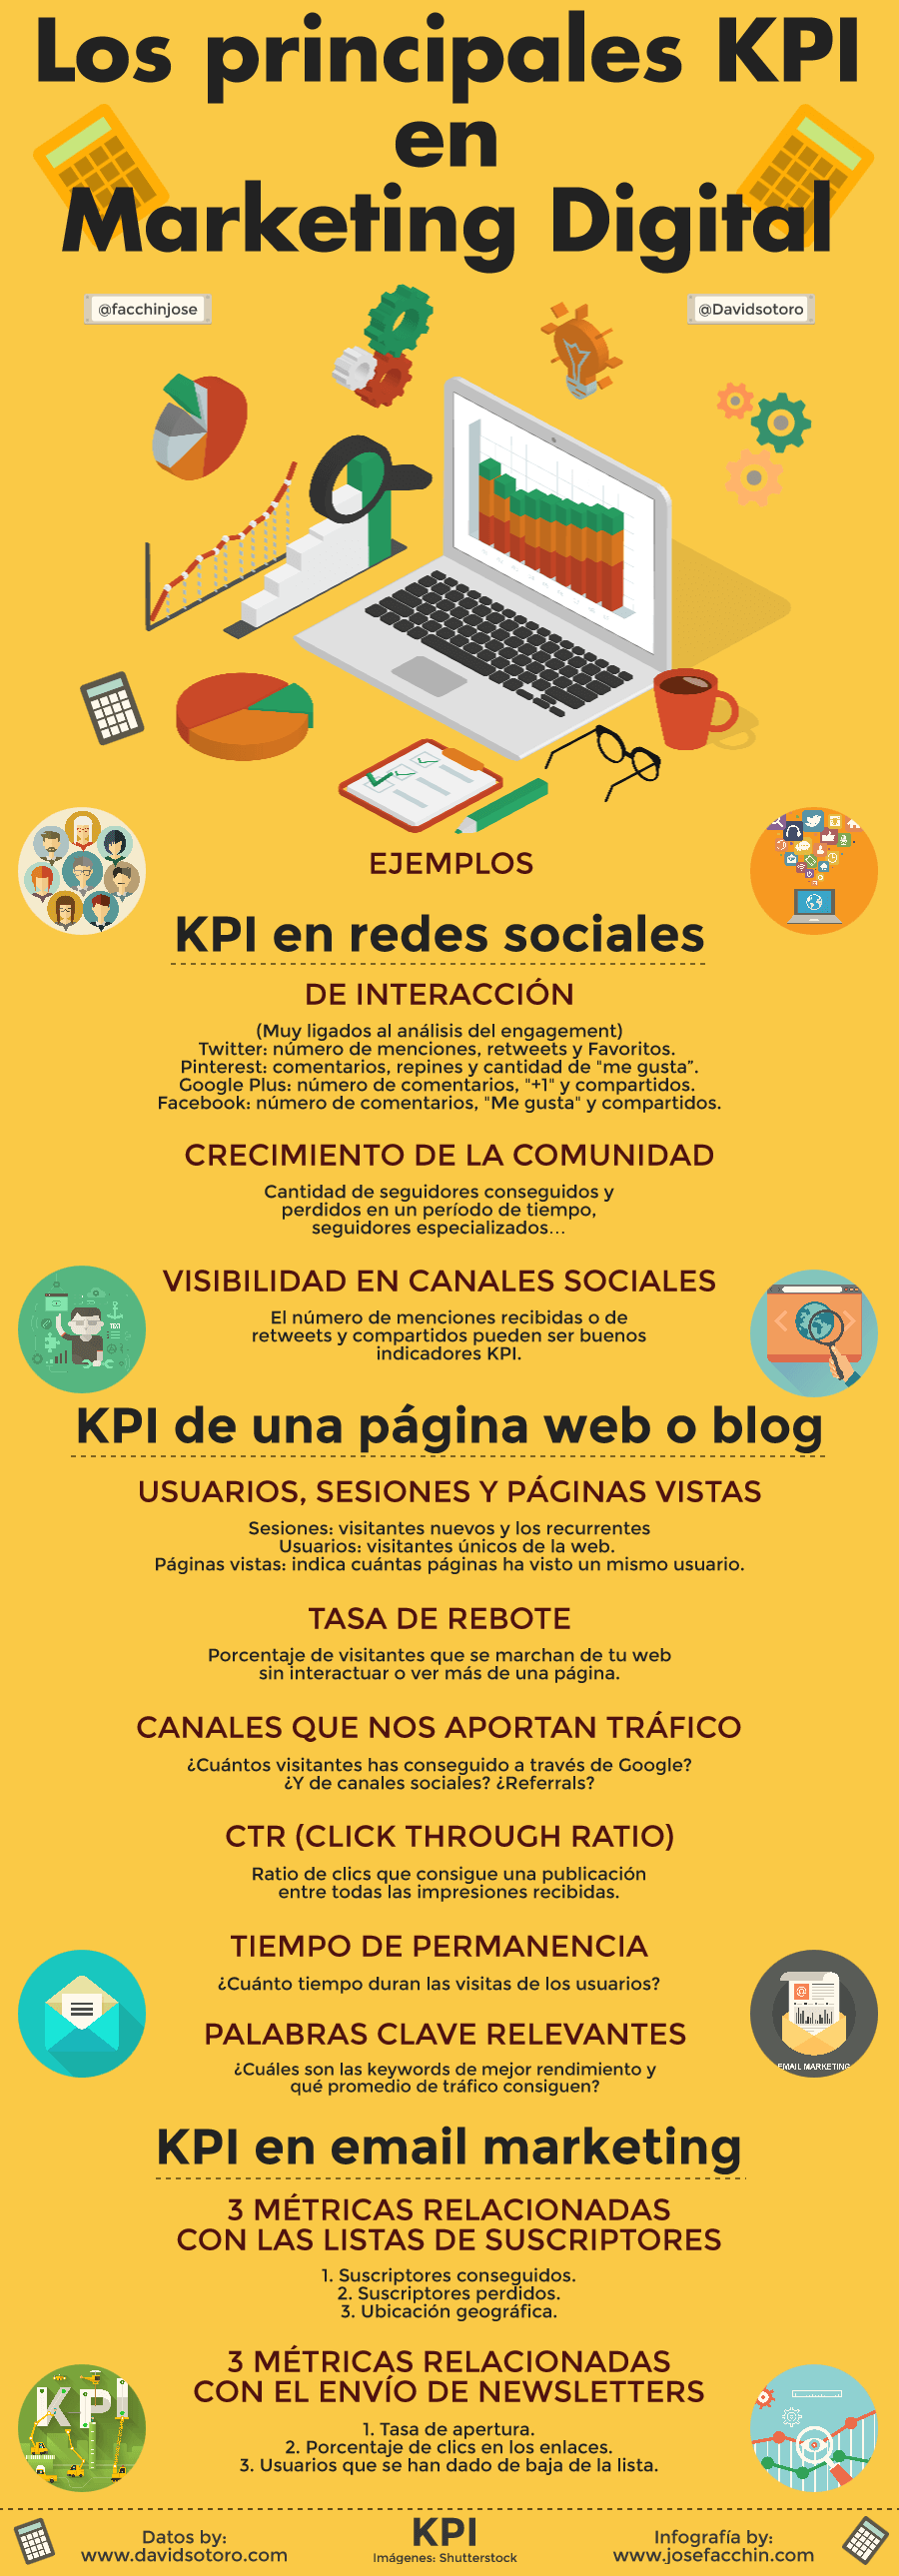 Ejemplos de los principales KPI en Marketing Digital